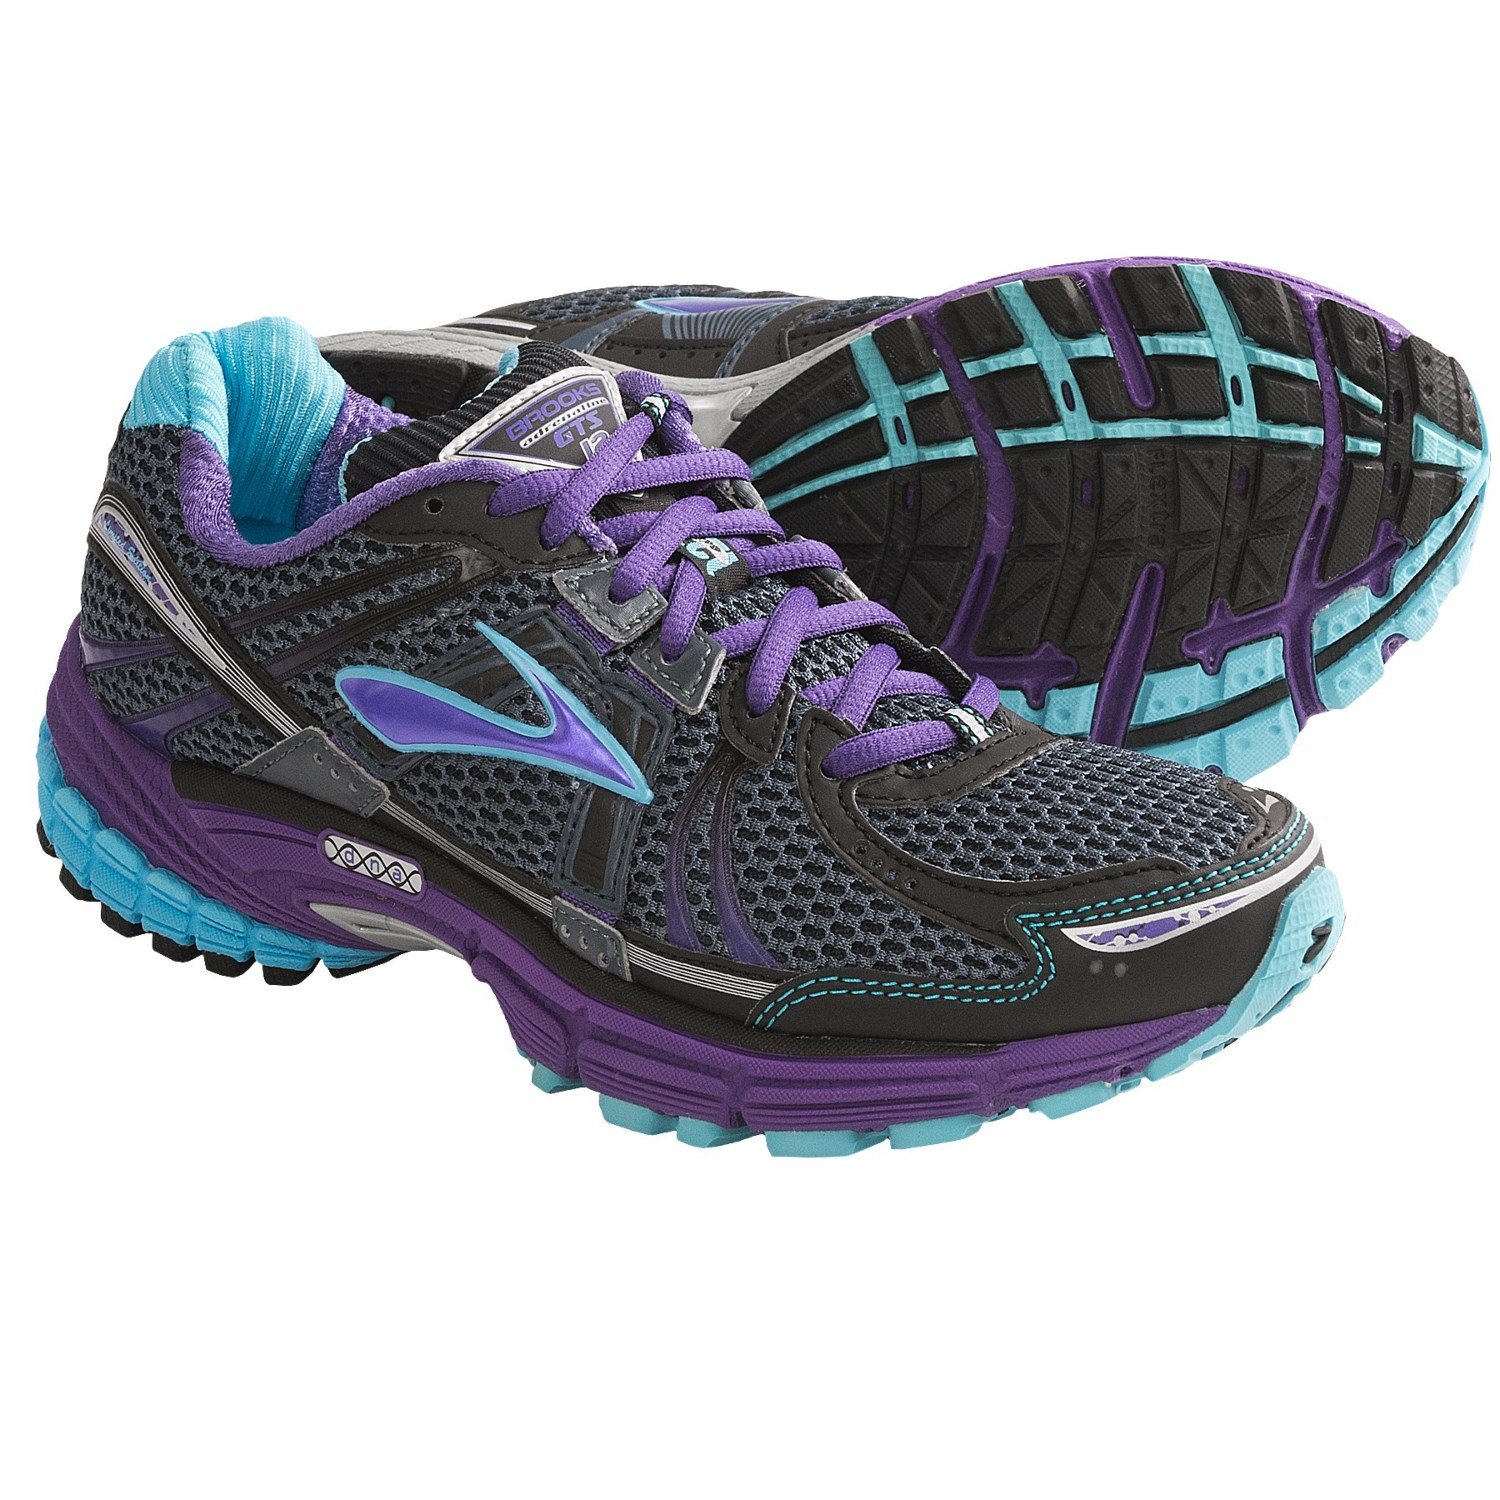 Brooks Adrenaline GTS 12 Running Shoes (For Women) in Ombre Blue/Black